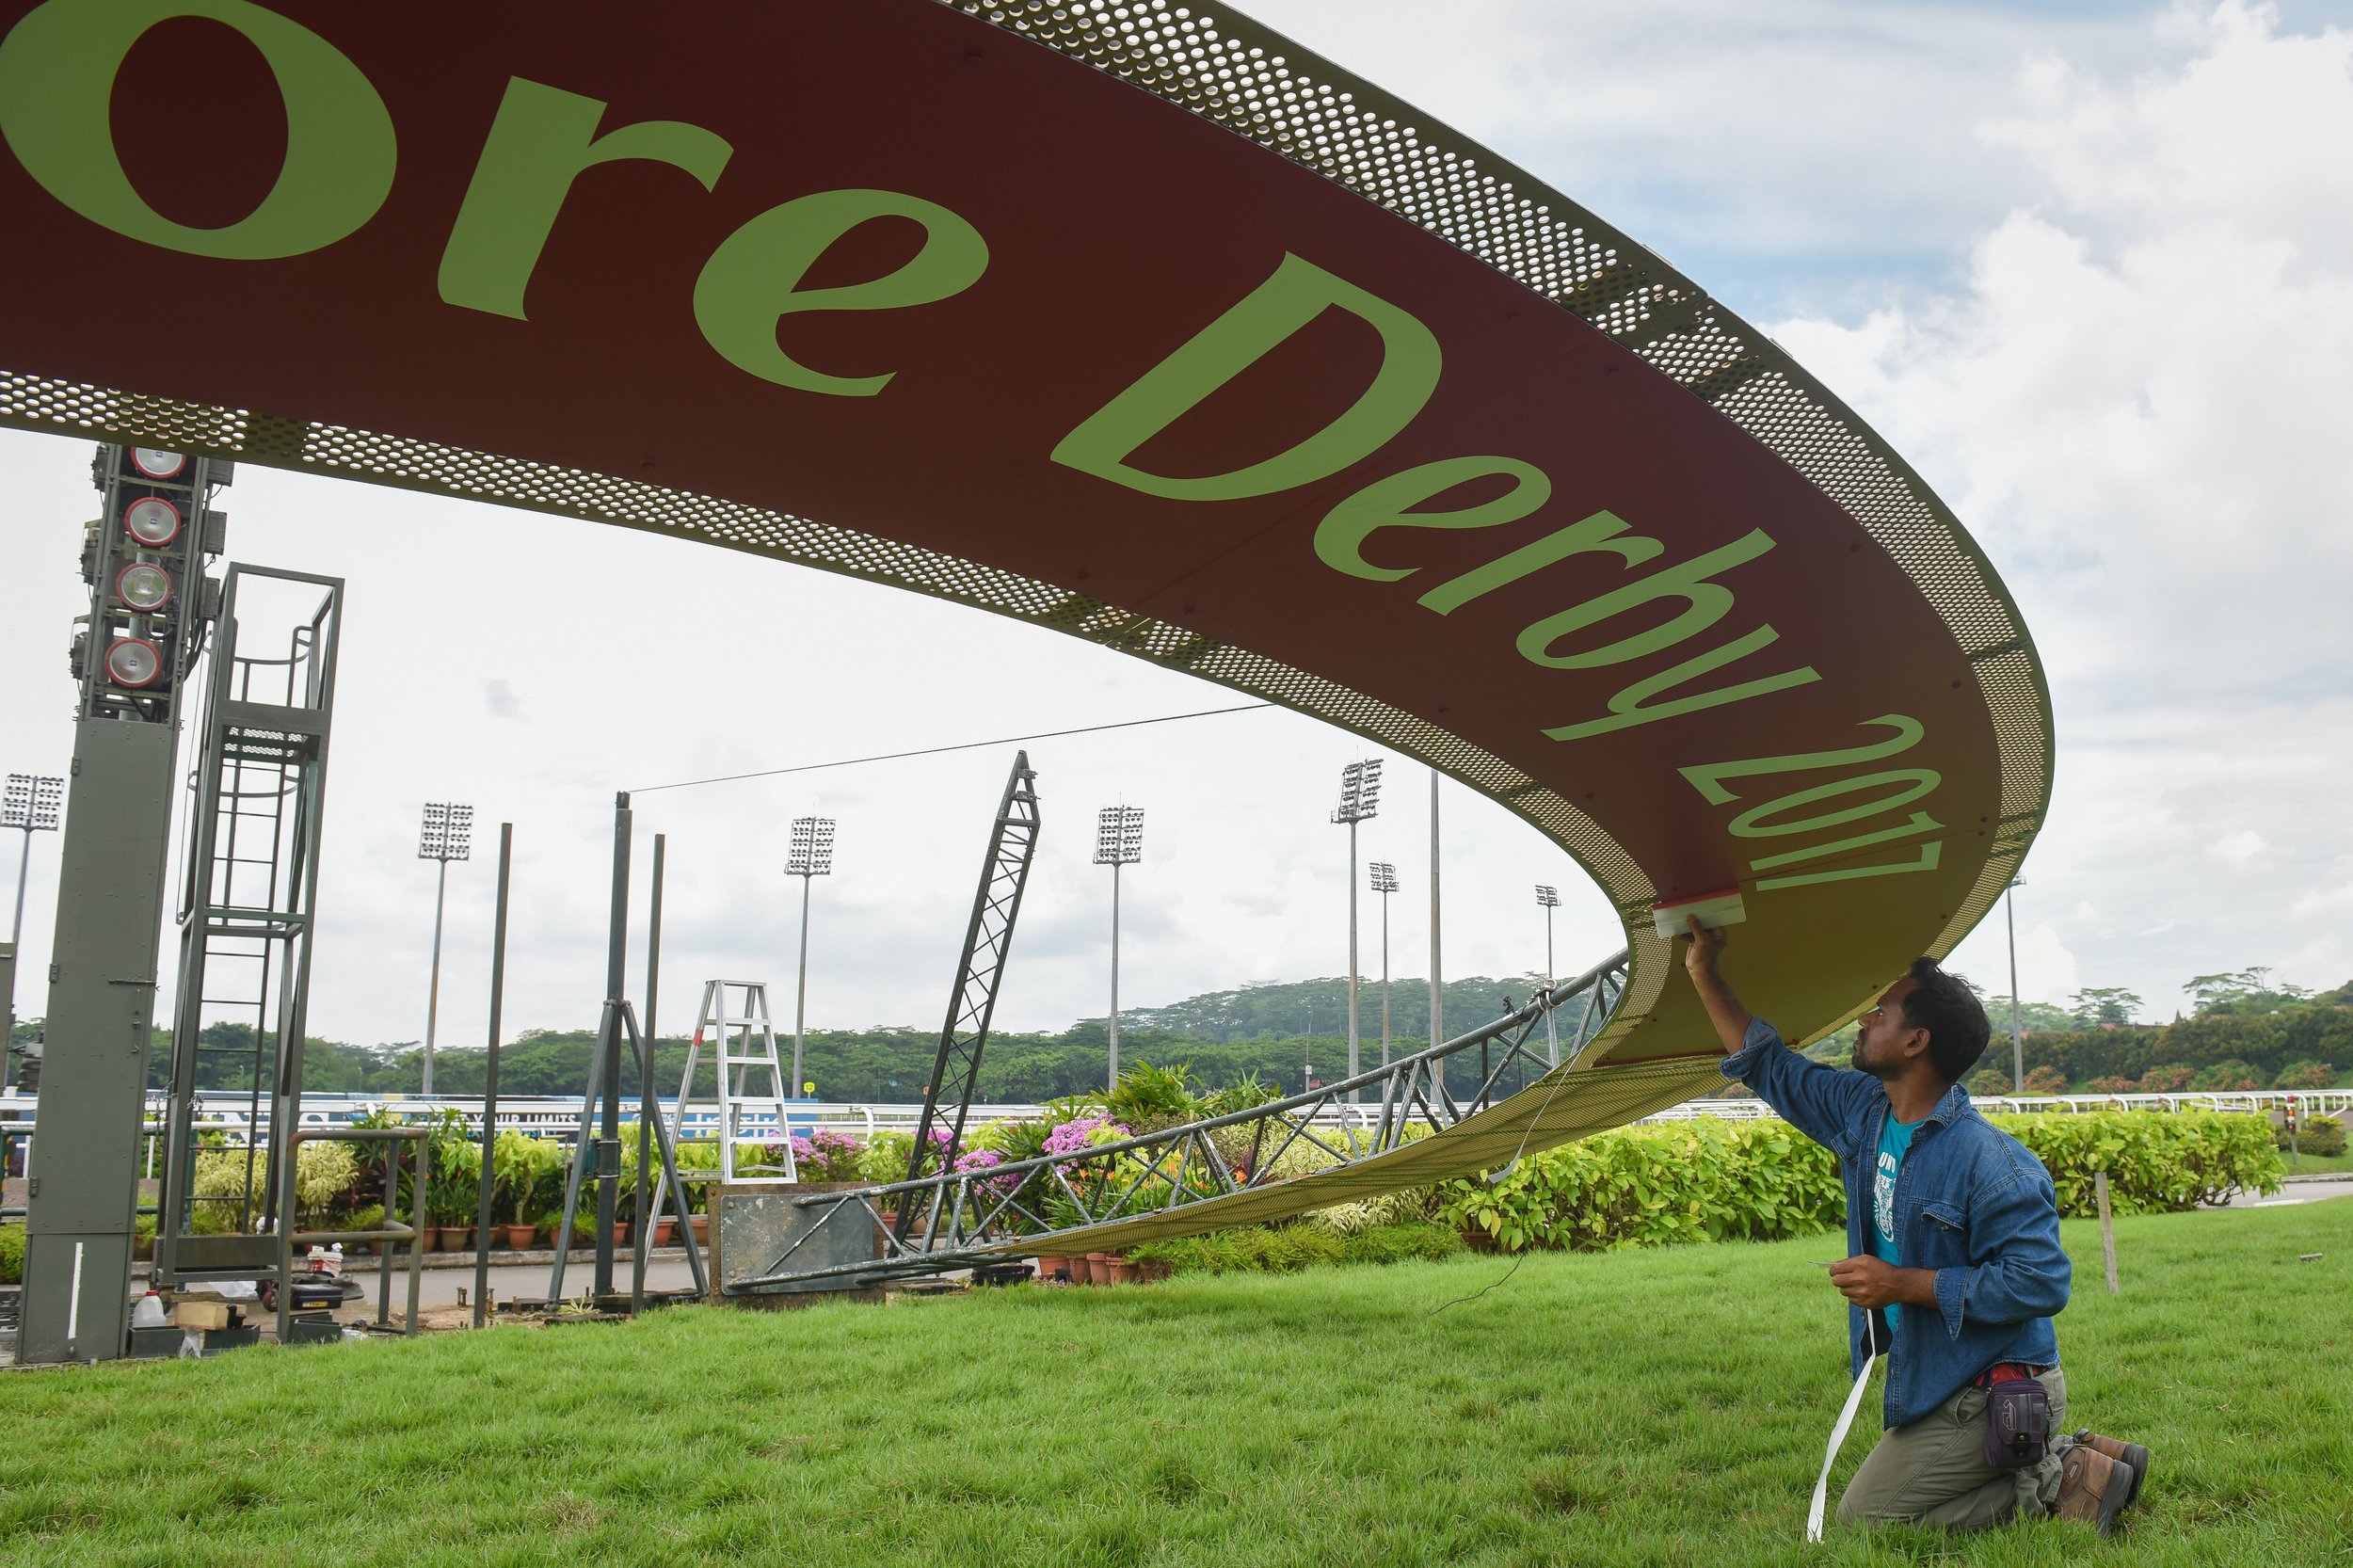 A worker putting the finishing touches to the Emirates Singapore Derby banner, which is shaped like a horseshoe, on Saturday, the day before the race. As live races are held on Fridays and Sundays, Saturdays can get busy as workers have to tear down the decorations for the previous day and put up new ones.